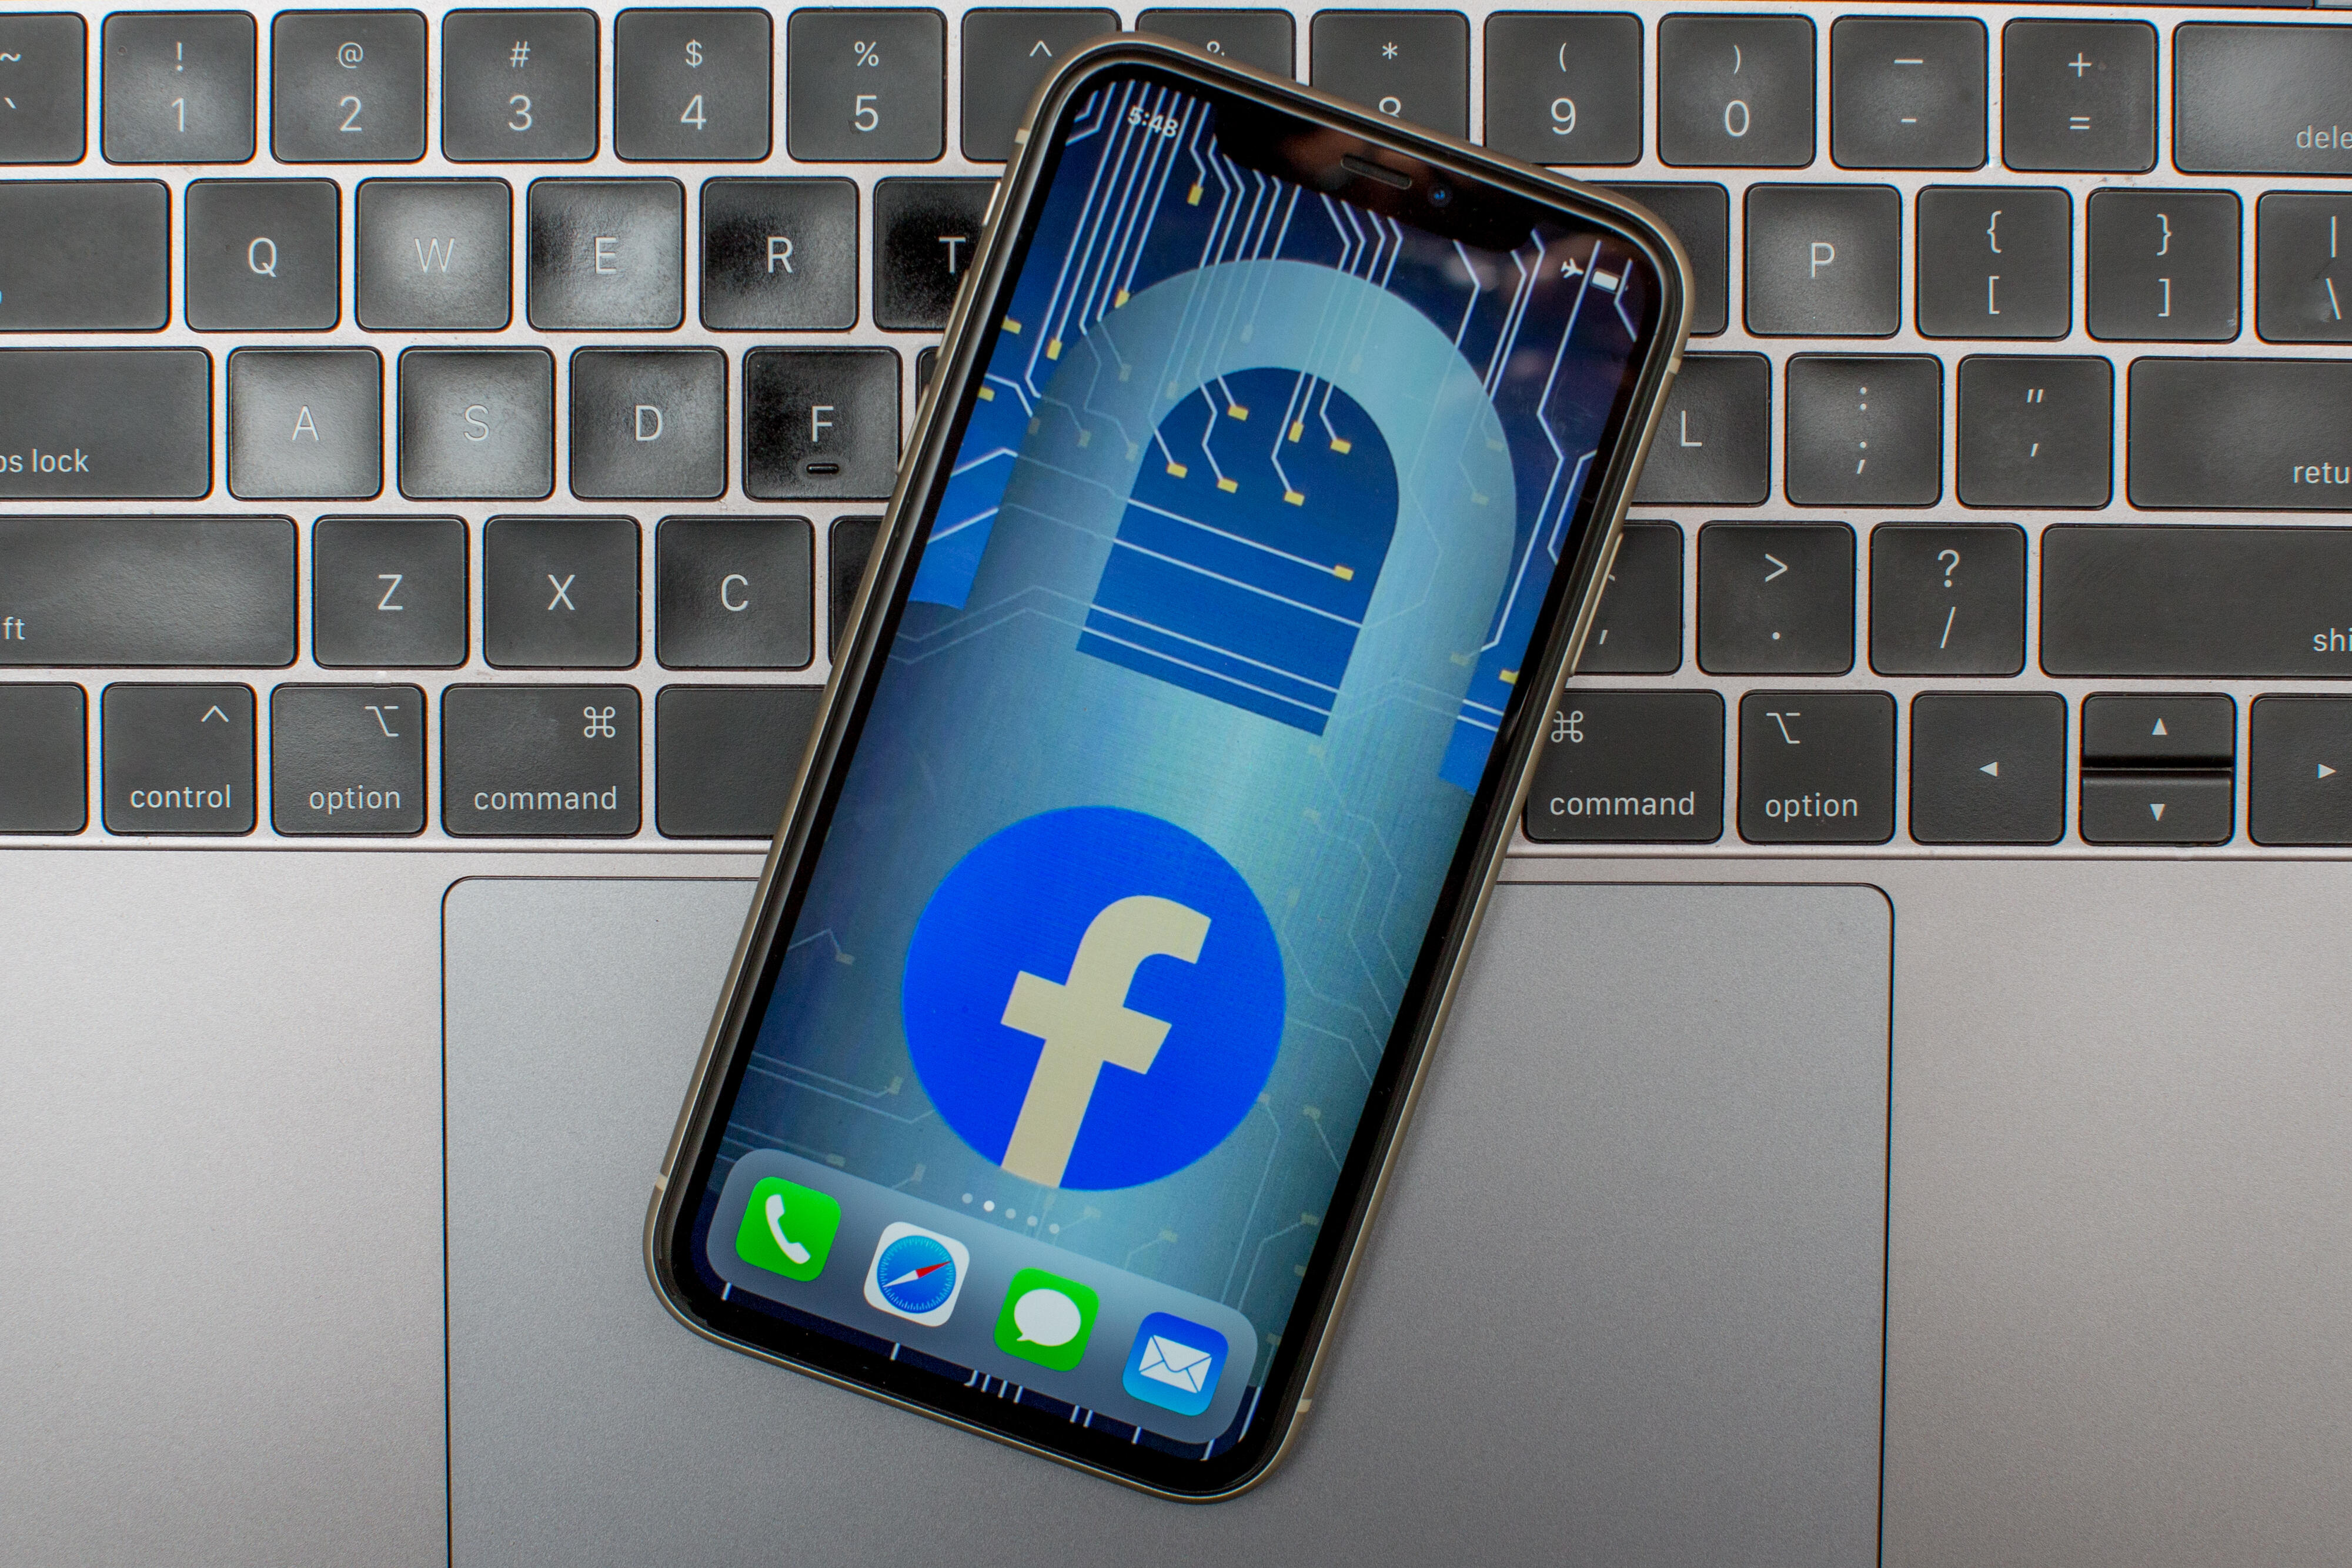 Facebook logo and padlock outline on a phone screen, atop a laptop keyboard